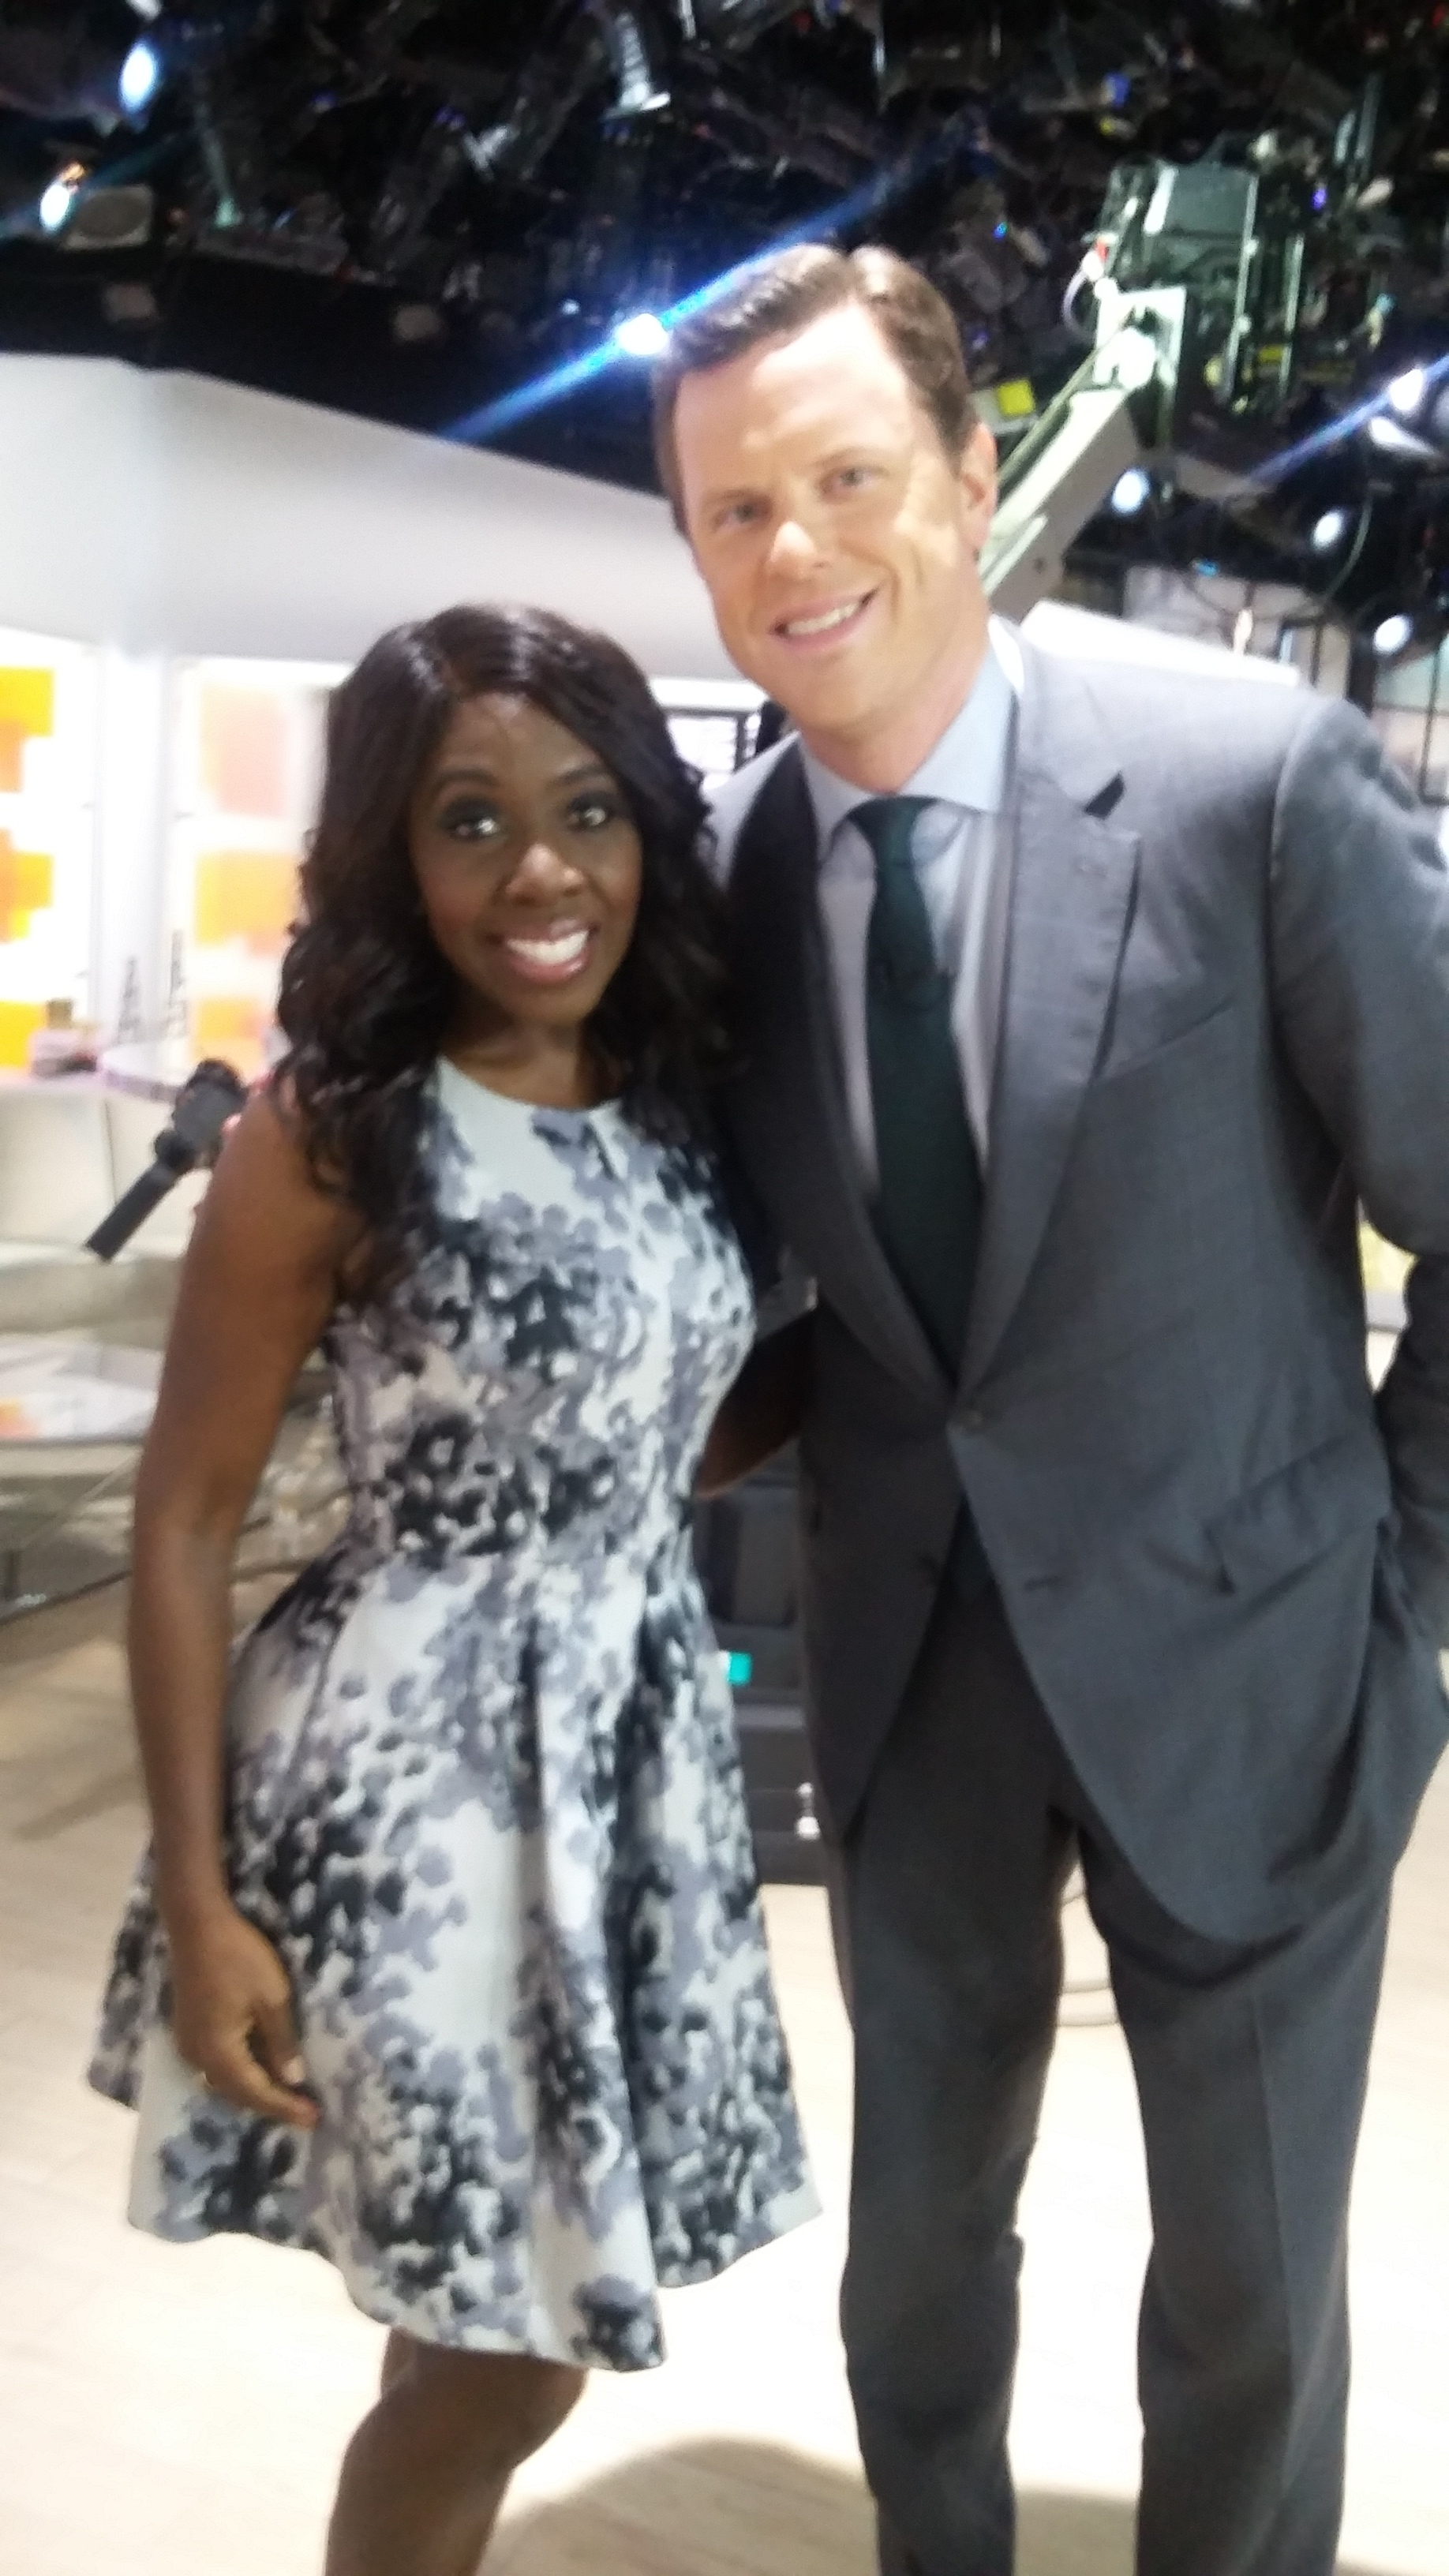 Me with TODAY Show anchor Willie Geist.